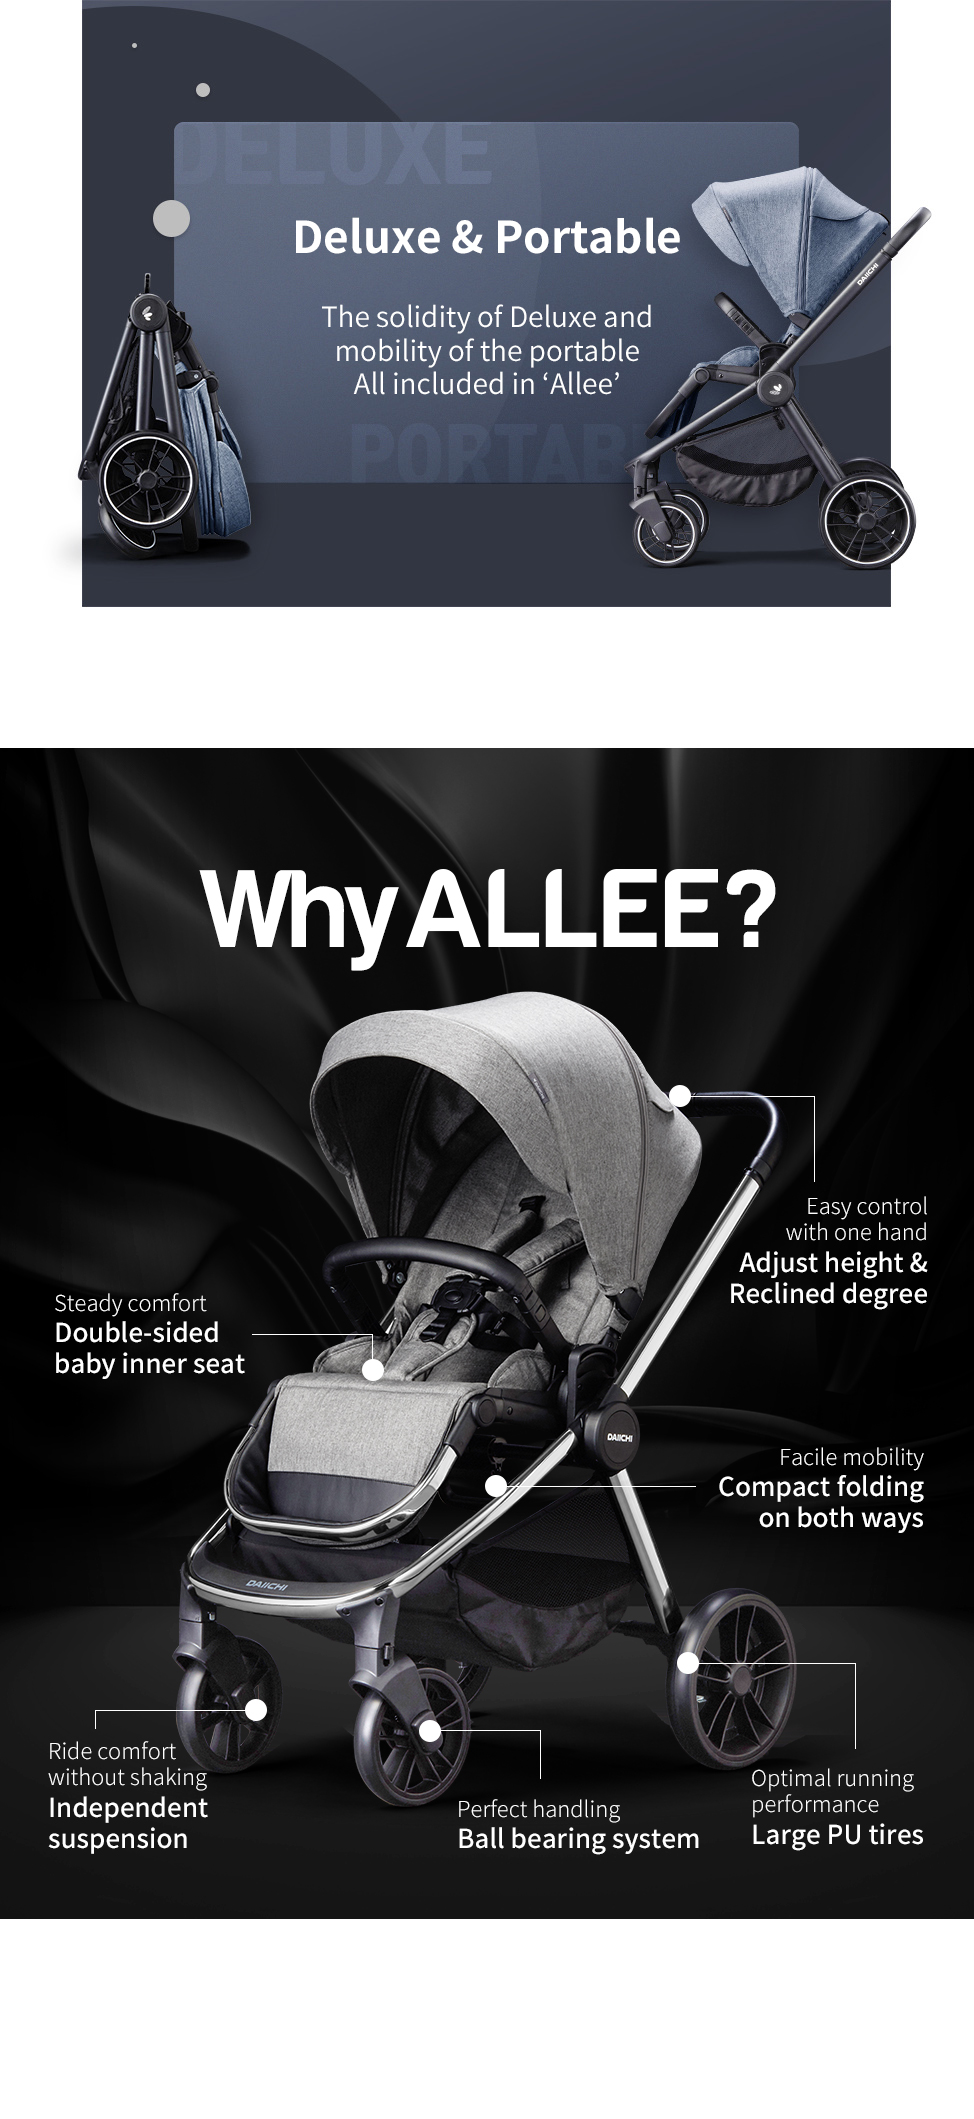 The solidity of Deluxe and mobility of the portable All included in 'Allee'